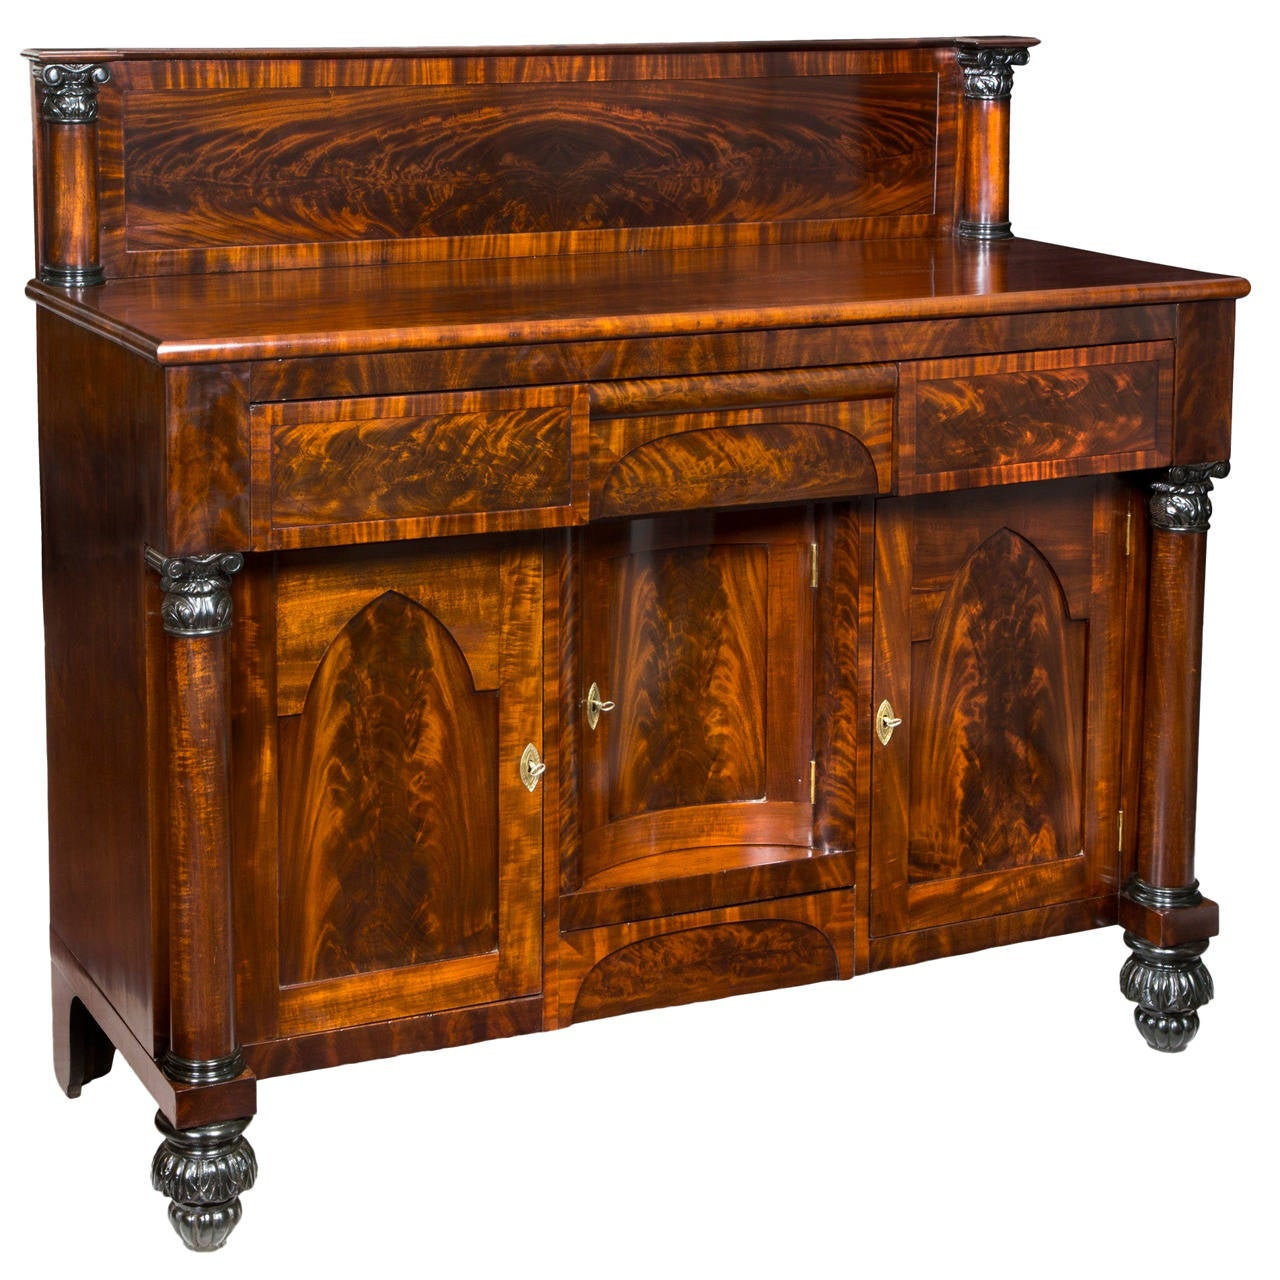 Mahogany Classical Sideboard with Gothic Arch Doors, Brooklyn, NY, circa 1840